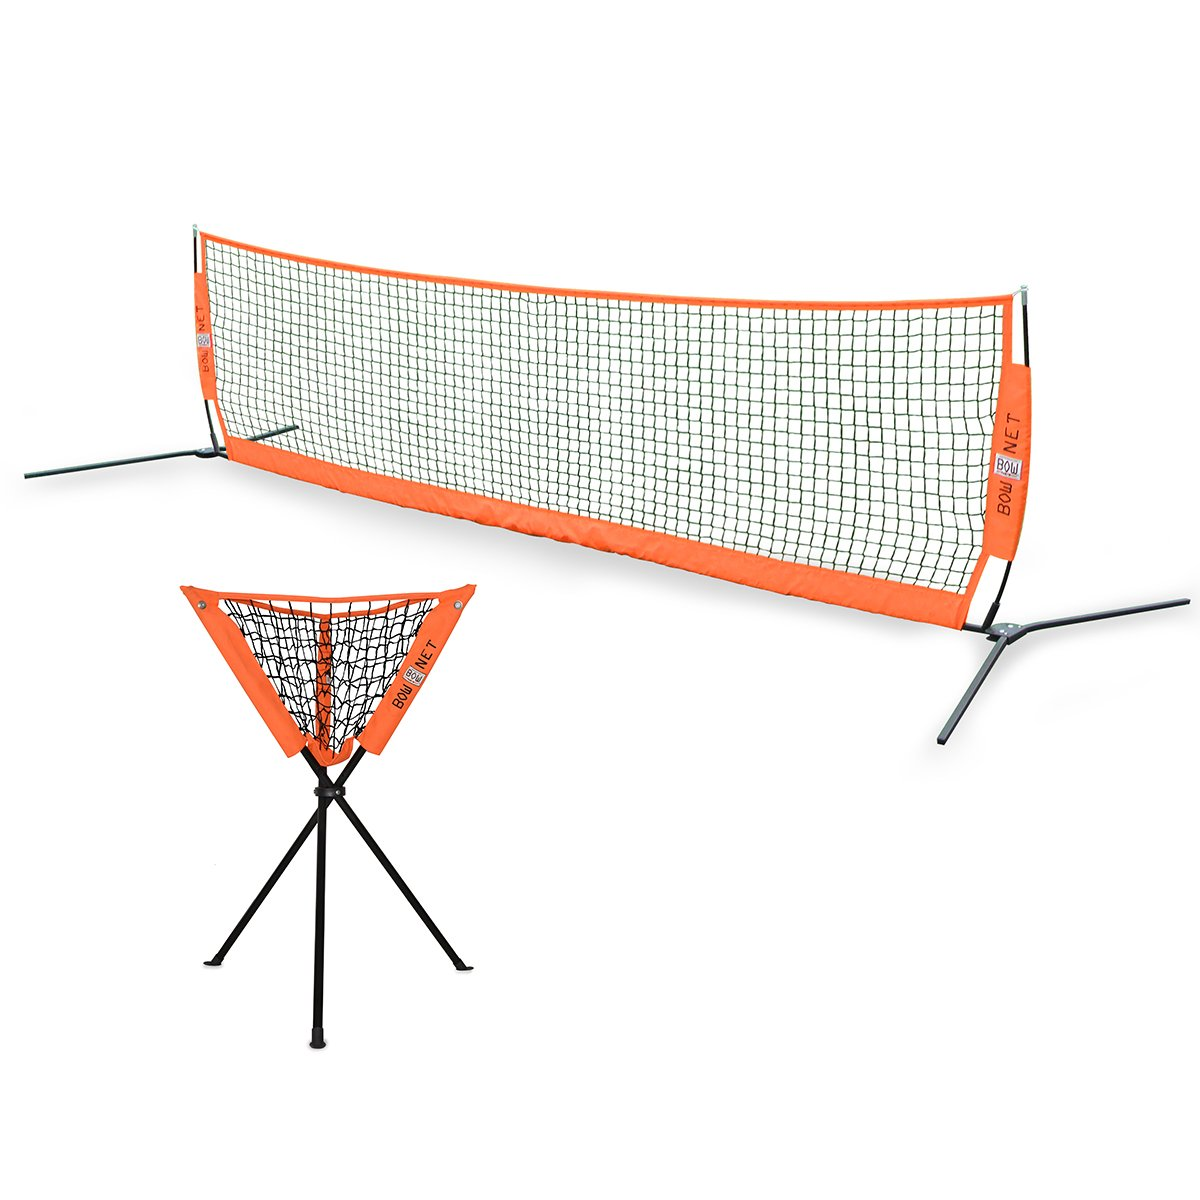 BUNDLE PACK - Bownet 12' x 3' Tennis / Soccer Tennis Net with Tennis Ball Caddy by Bownet